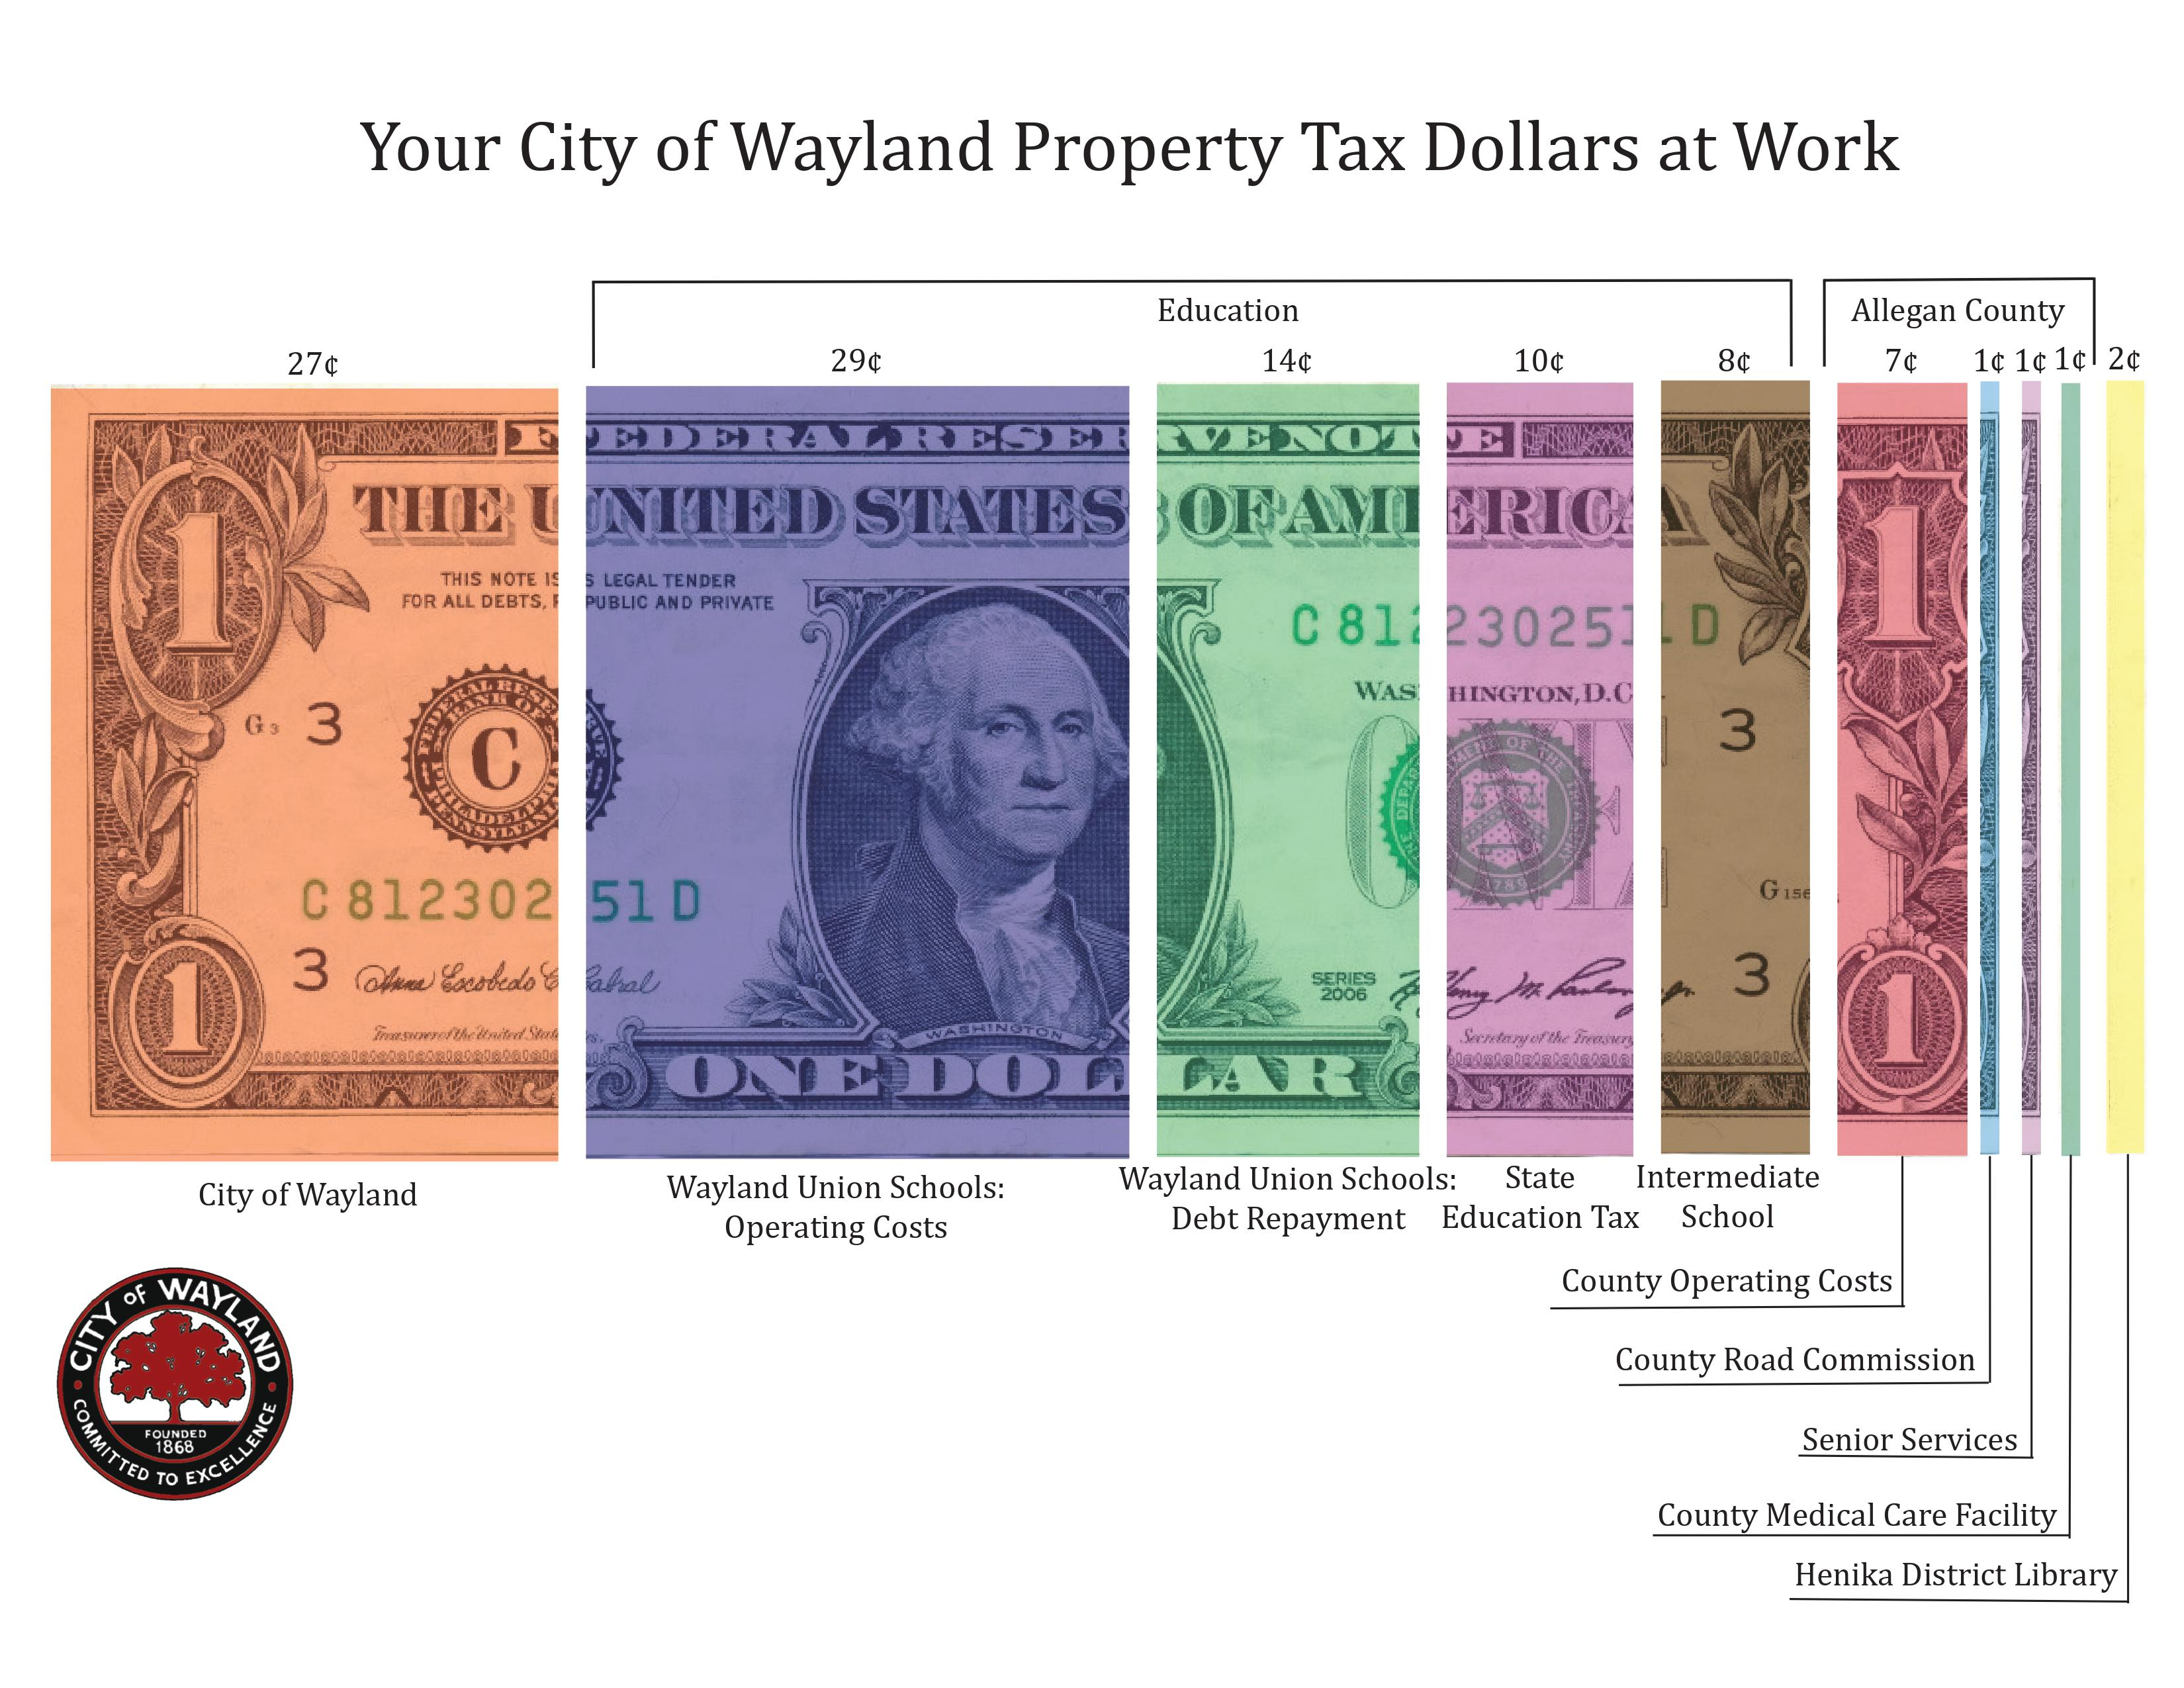 A dollar bill broken into sections, showing in cents how much of your property taxes go to different areas. In the City of Wayland, 27 cents go to the City itself, 61 cents to education (including 29 cents for Wayland Union Schools Operating Costs, 14 cents for Wayland Union Schools Debt Repayment, 10 cents for State Education Tax and 8 cents for the Intermediate school), 10 cents go to Allegan County (including 7 cents for County Operating Costs, and 1 cent each for the County Road Commission, Senior Services, and County Medical Care Facility), and 2 cents for the Henika District Library.